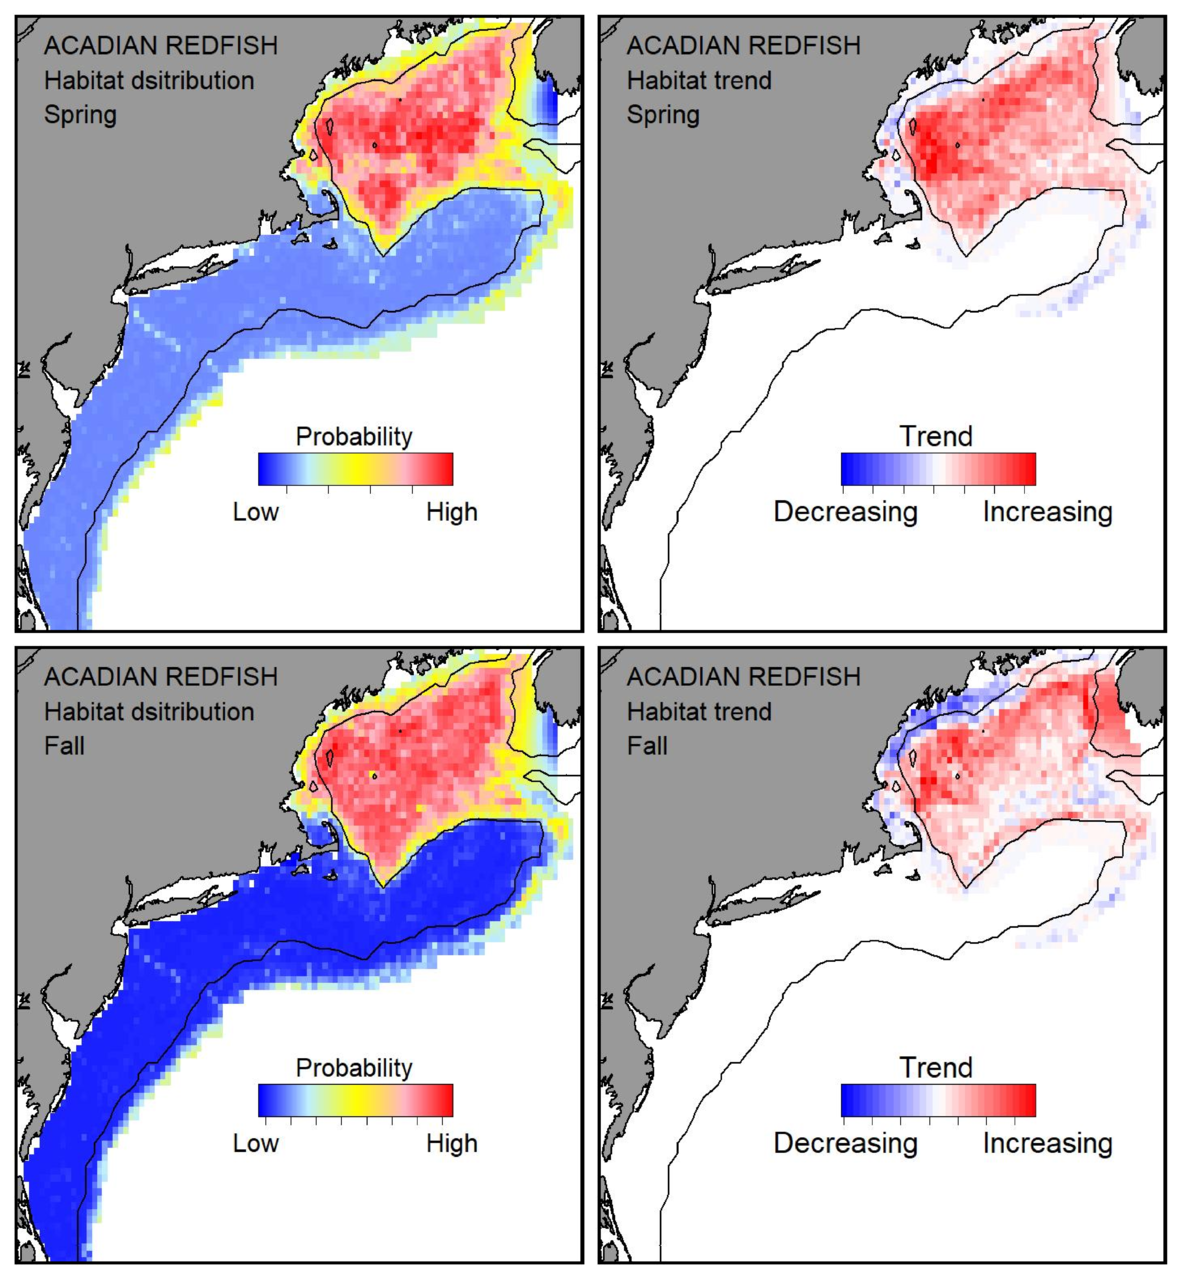 Top row: Probable habitat distribution for Acadian redfish showing the highest concentration and increasing trend in the Gulf of Maine during the spring. Bottom row: Probable habitat distribution for Acadian redfish showing the highest concentration and increasing trend in the Gulf of Maine during the fall.